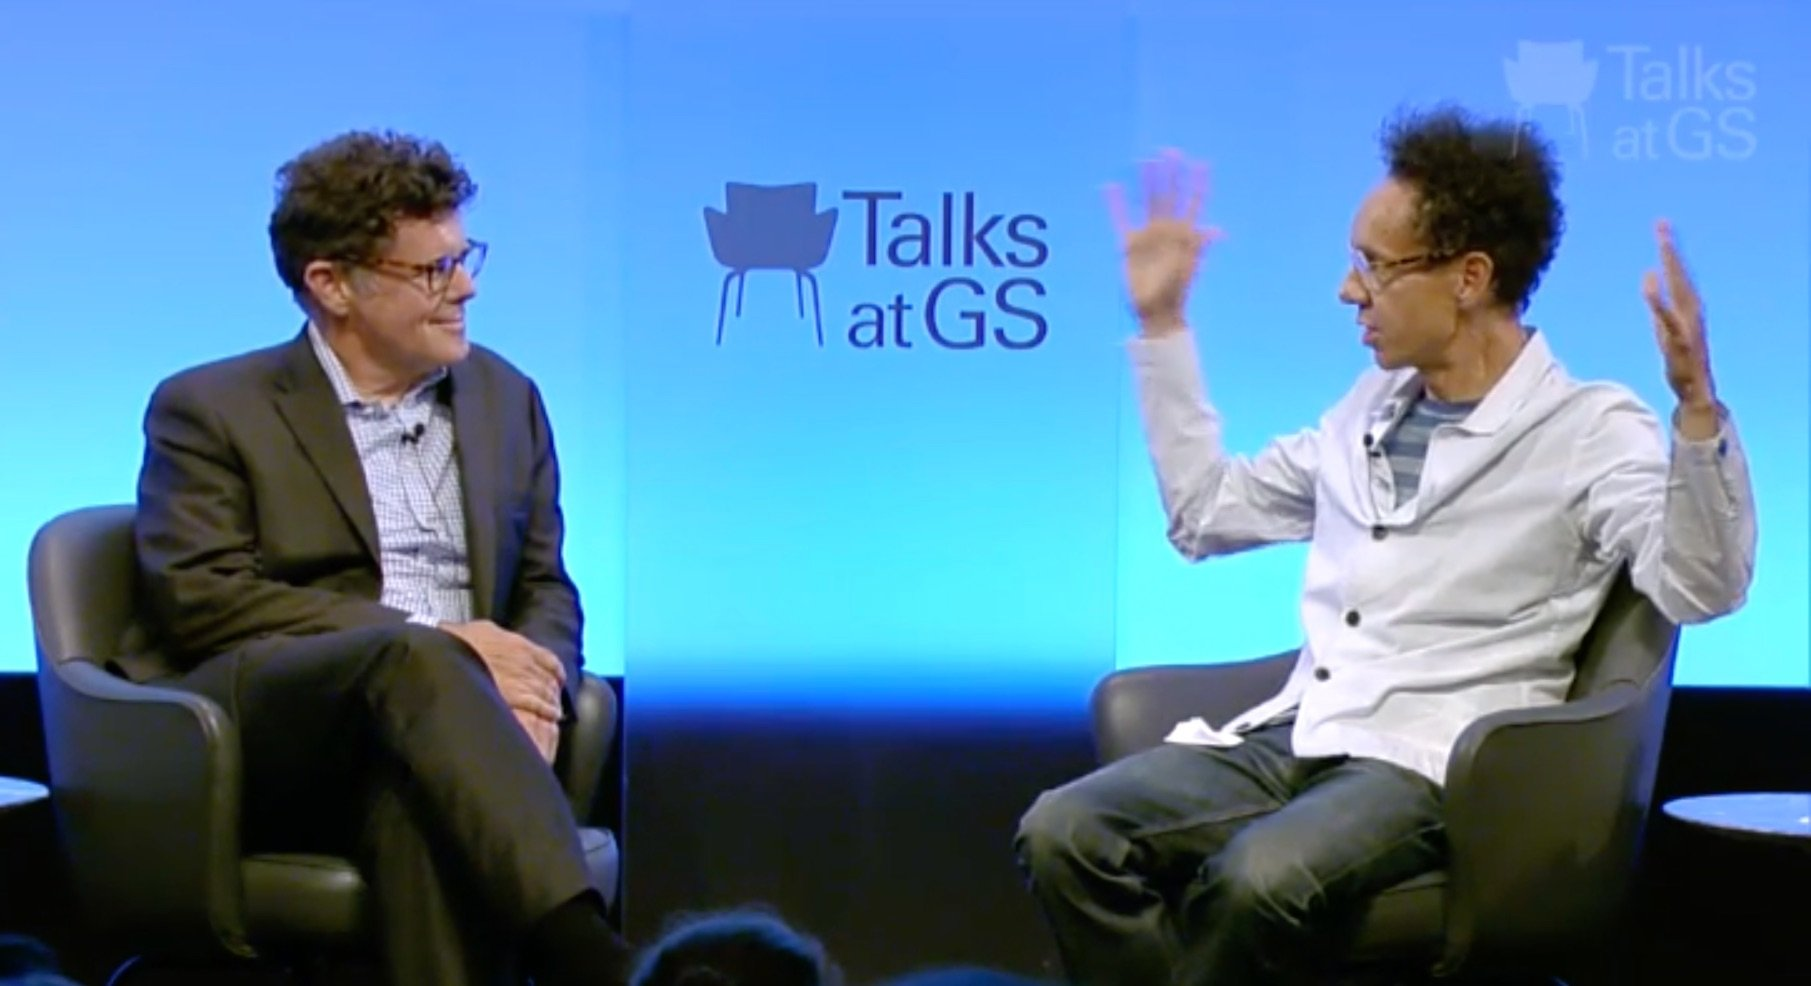 Talks at GS Malcolm Gladwell